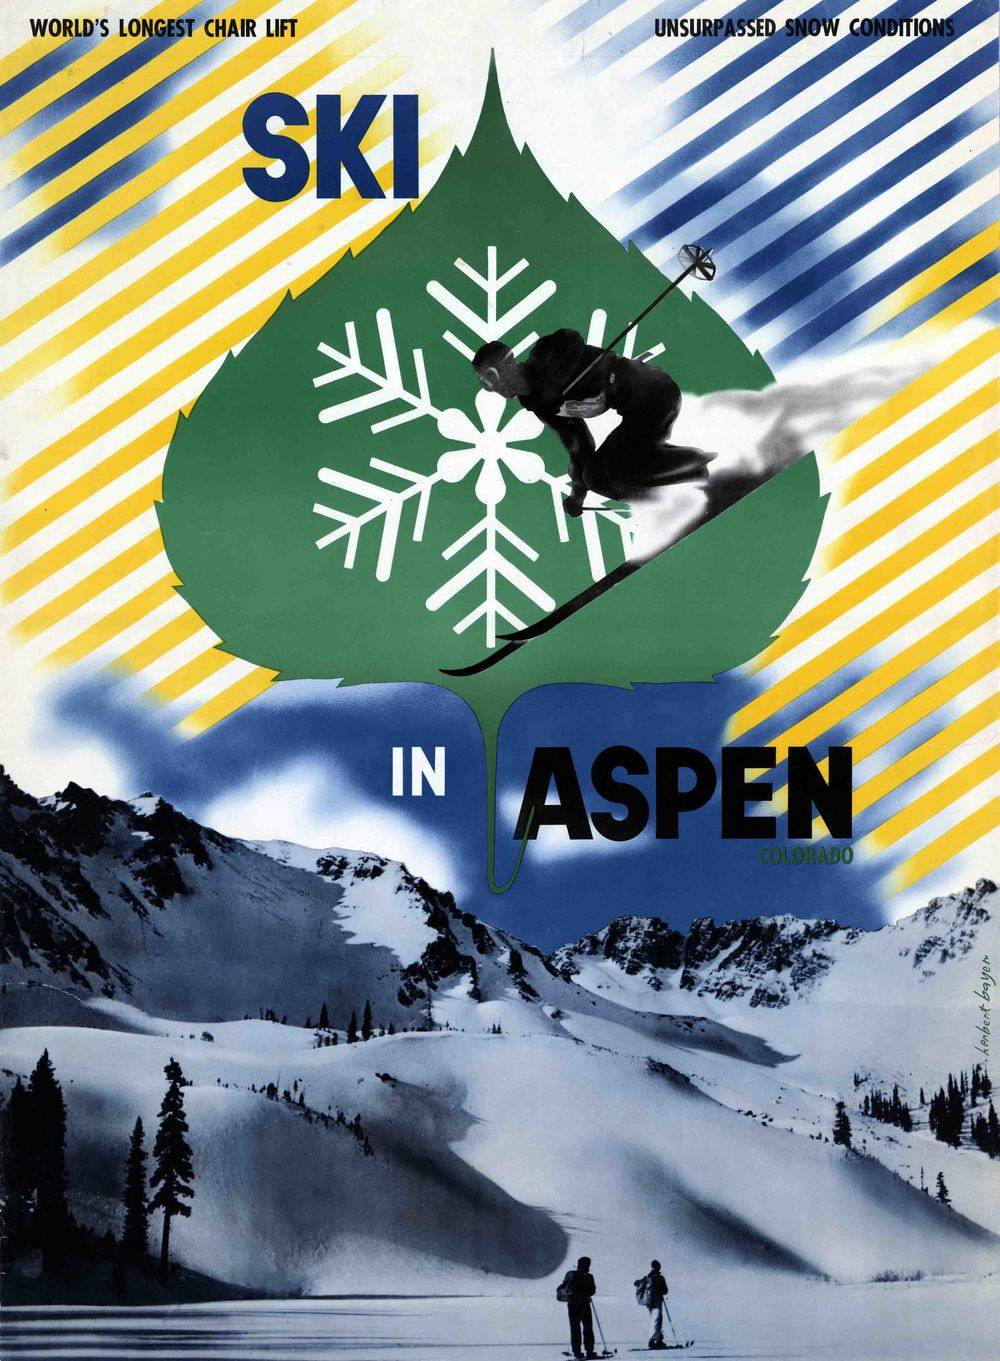 """Ski in Aspen Colorado"" posters designed by Herbert Bayer and produced by the Aspen Chamber of Commerce. The poster shows a ski area with two skiers (Hayden peak area) standing at the bottom of the poster. Photo: Aspen Historic Society"